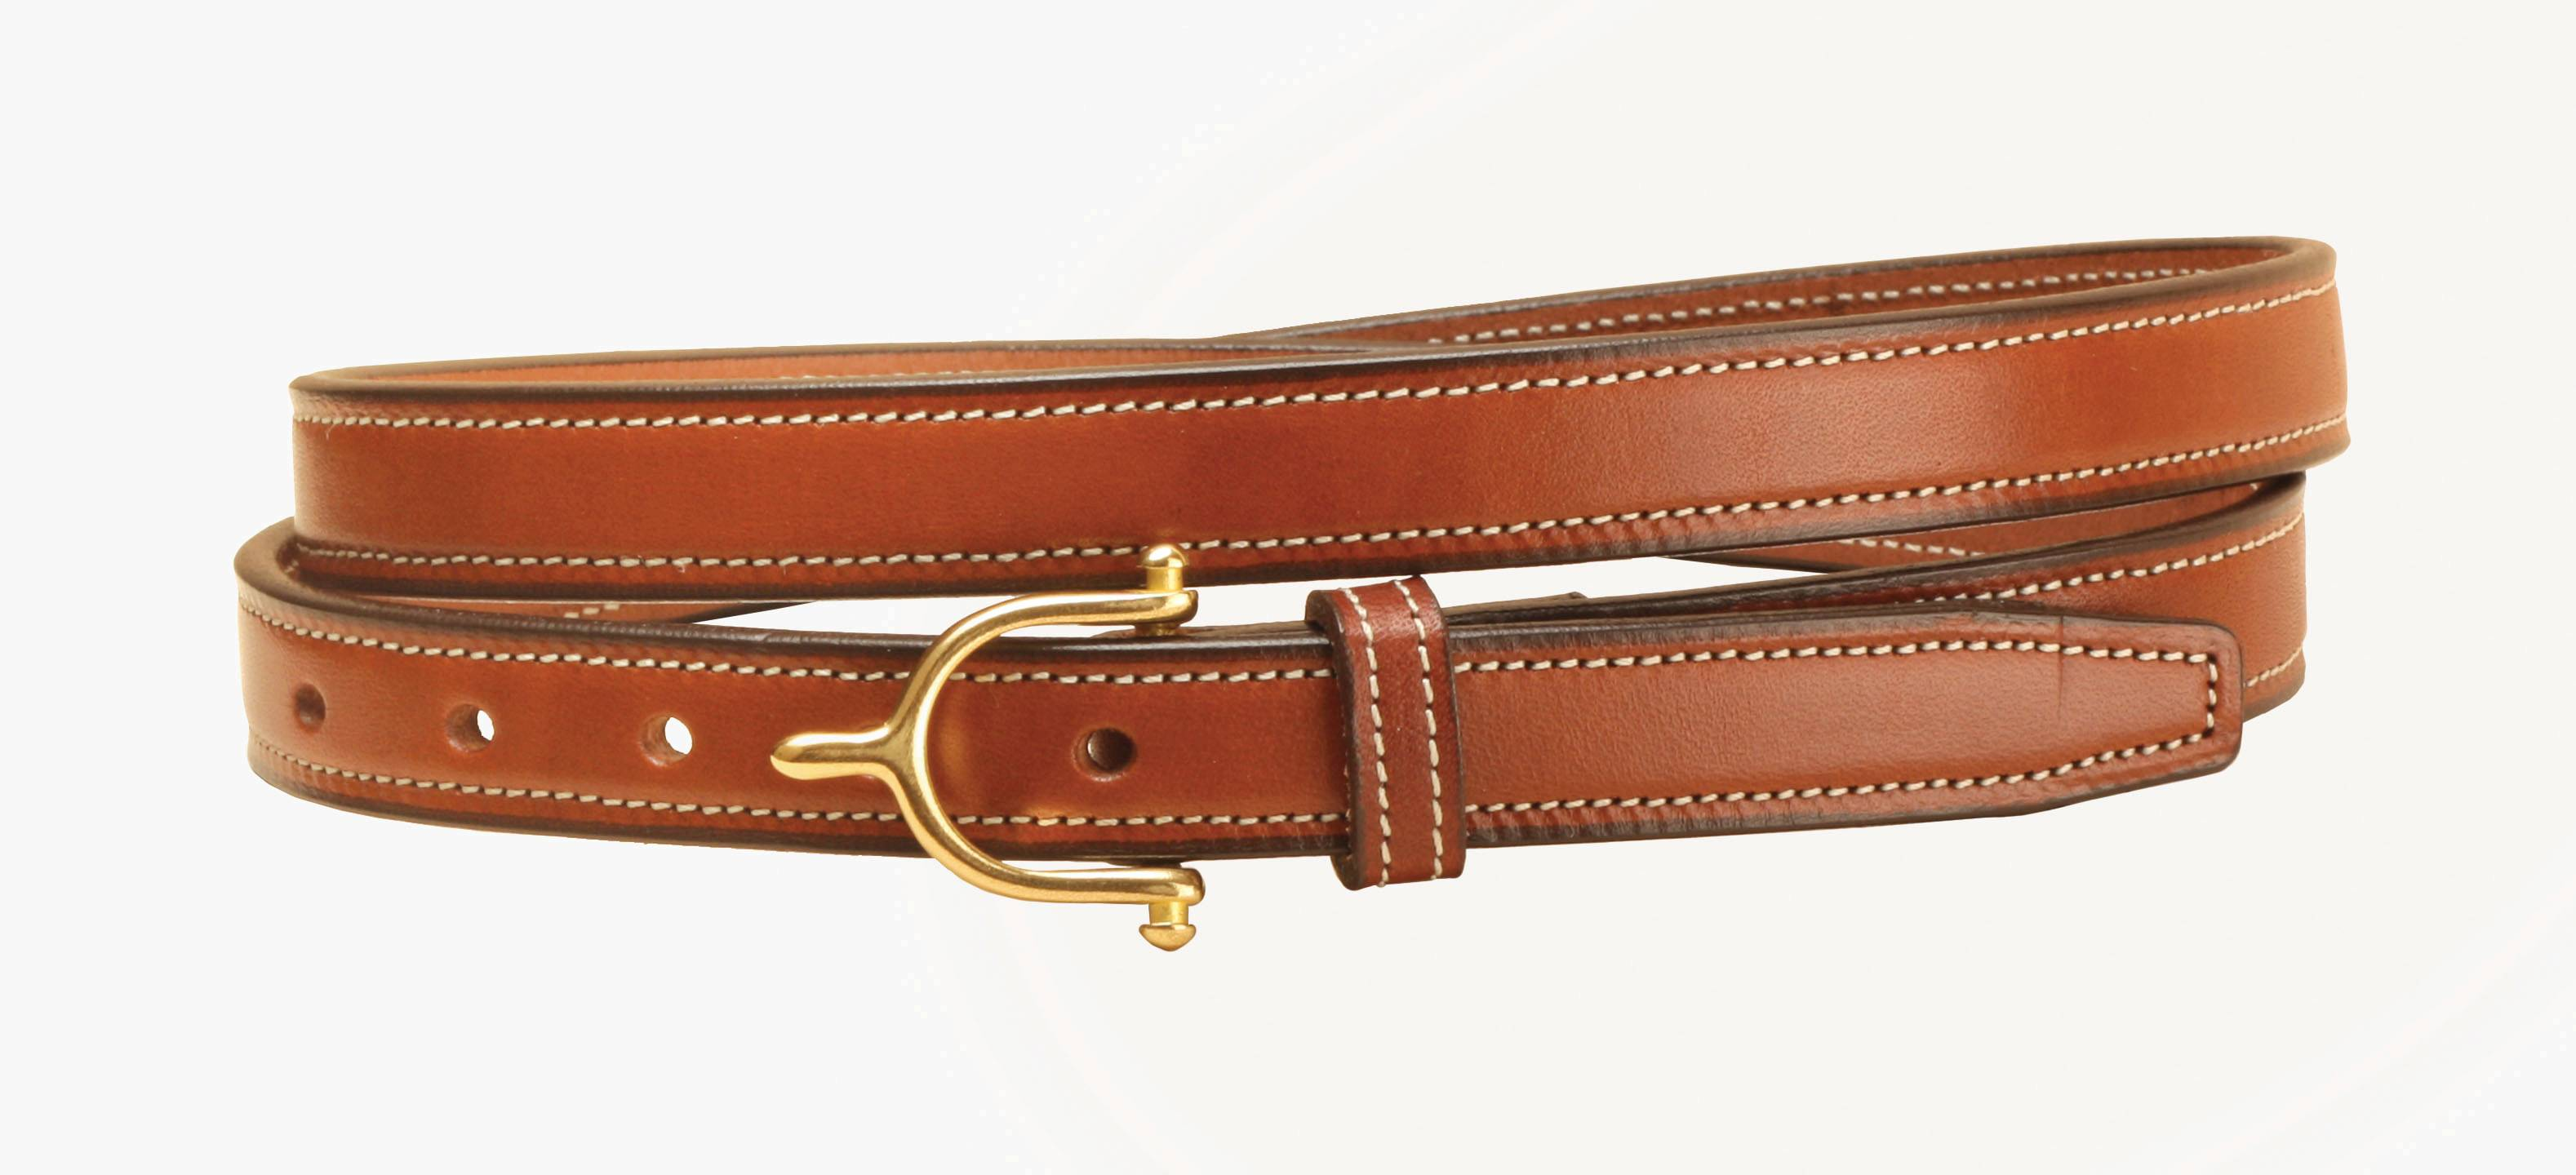 TORY LEATHER 1'' Belt with Spur Buckle